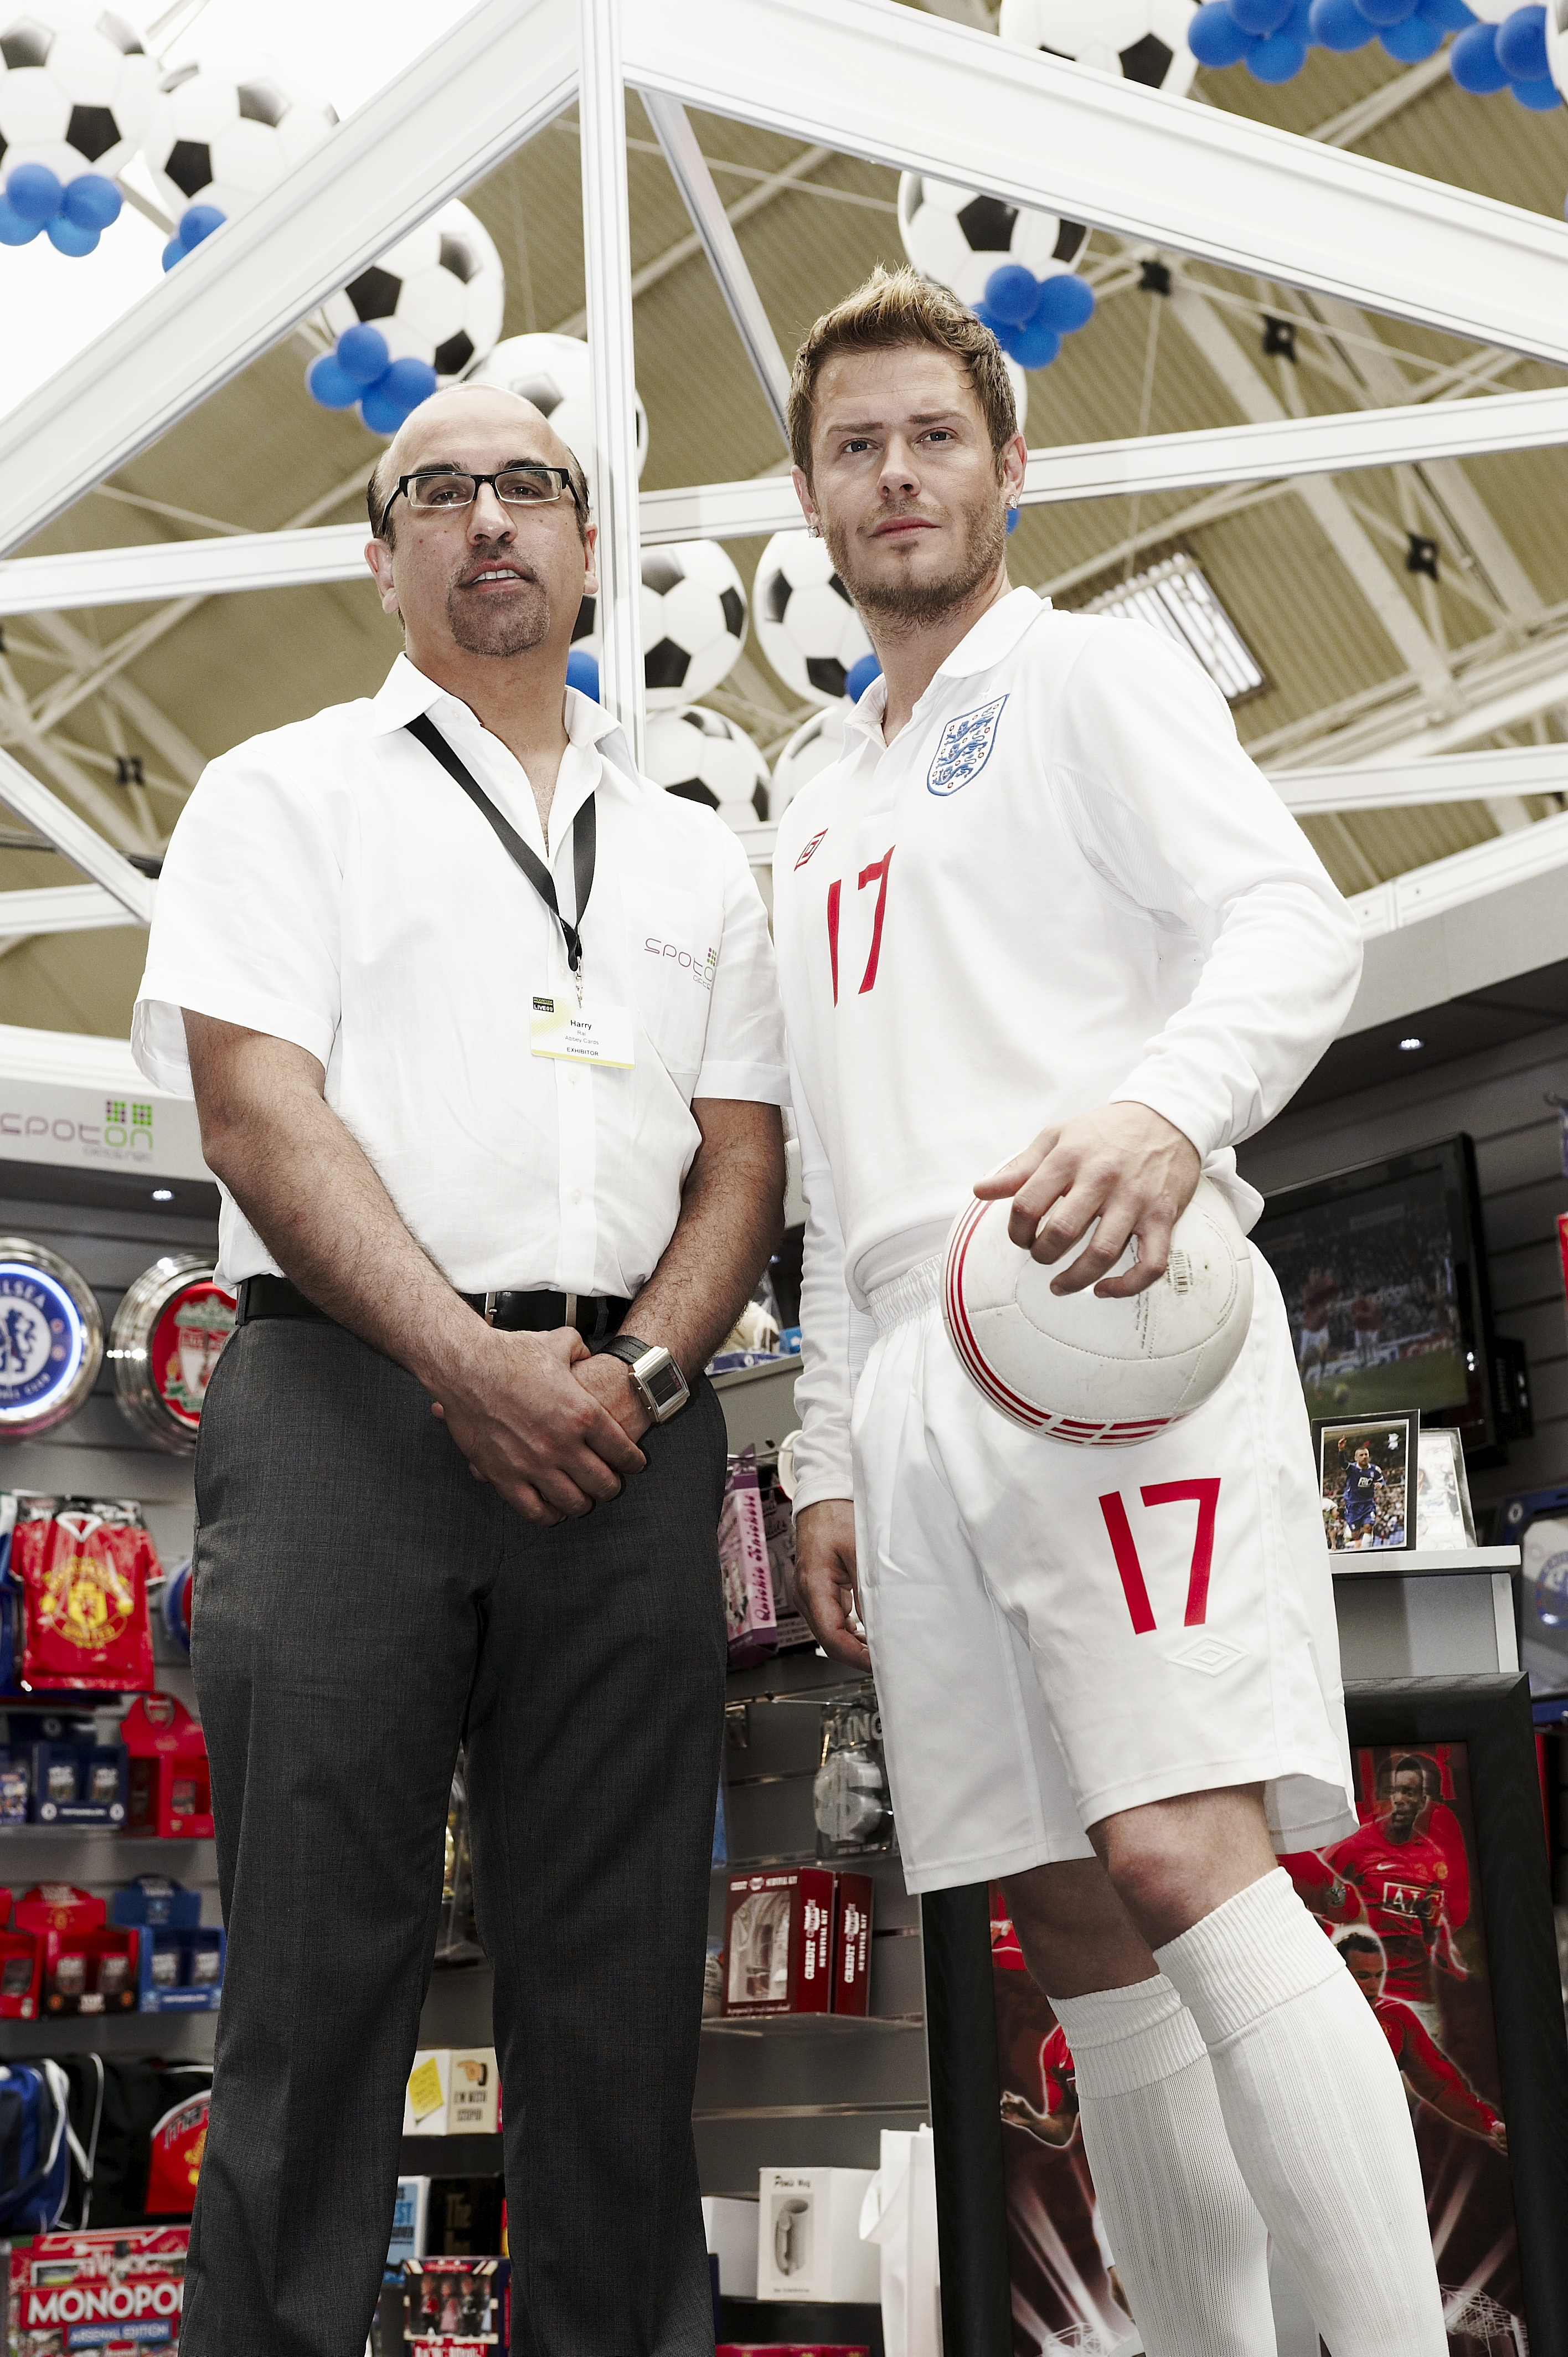 Above: Harry Rai caused a stir when he launched Spot On Gifts, having a lookalike David Beckham on the stand at the Spring Fair.